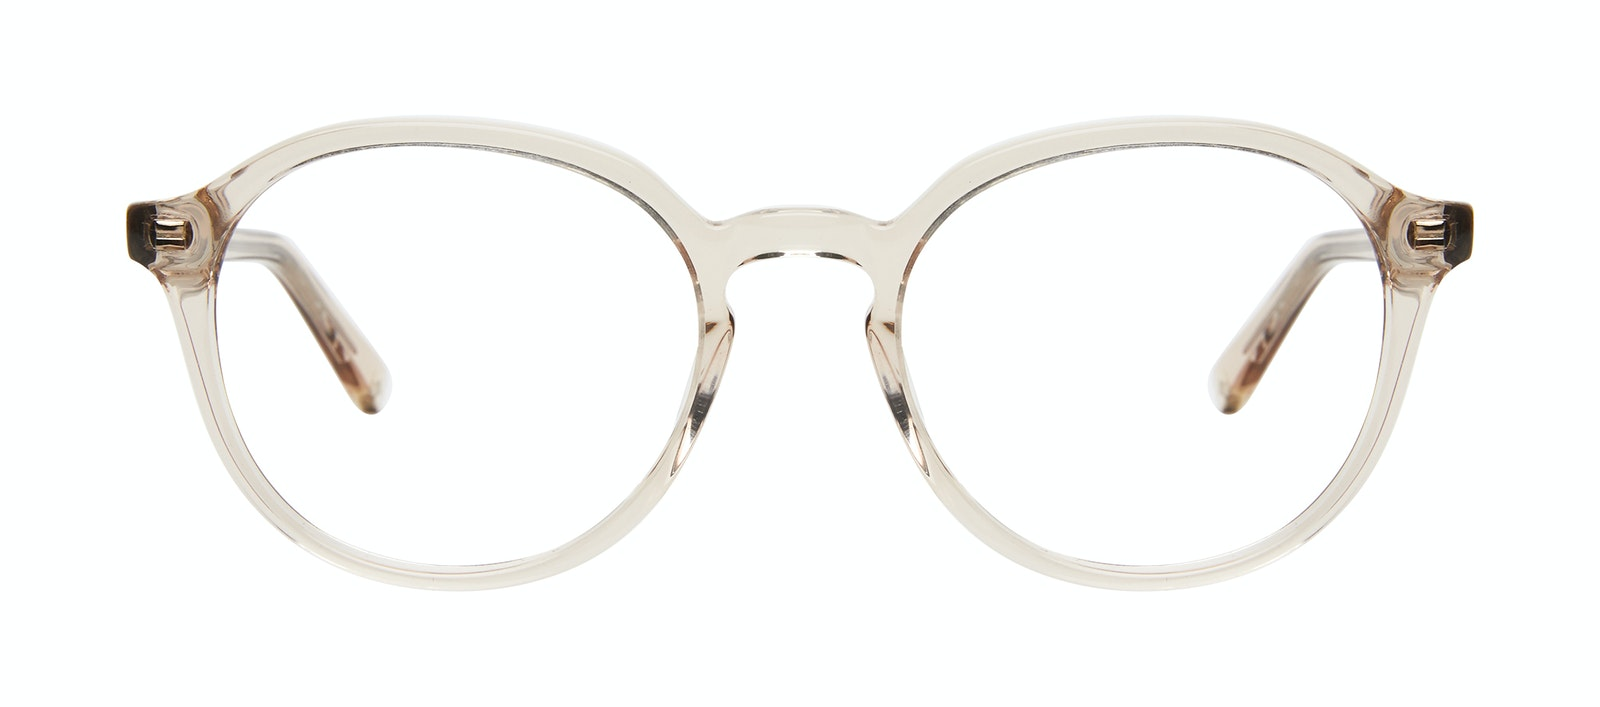 Affordable Fashion Glasses Round Eyeglasses Men Ansel Golden Front